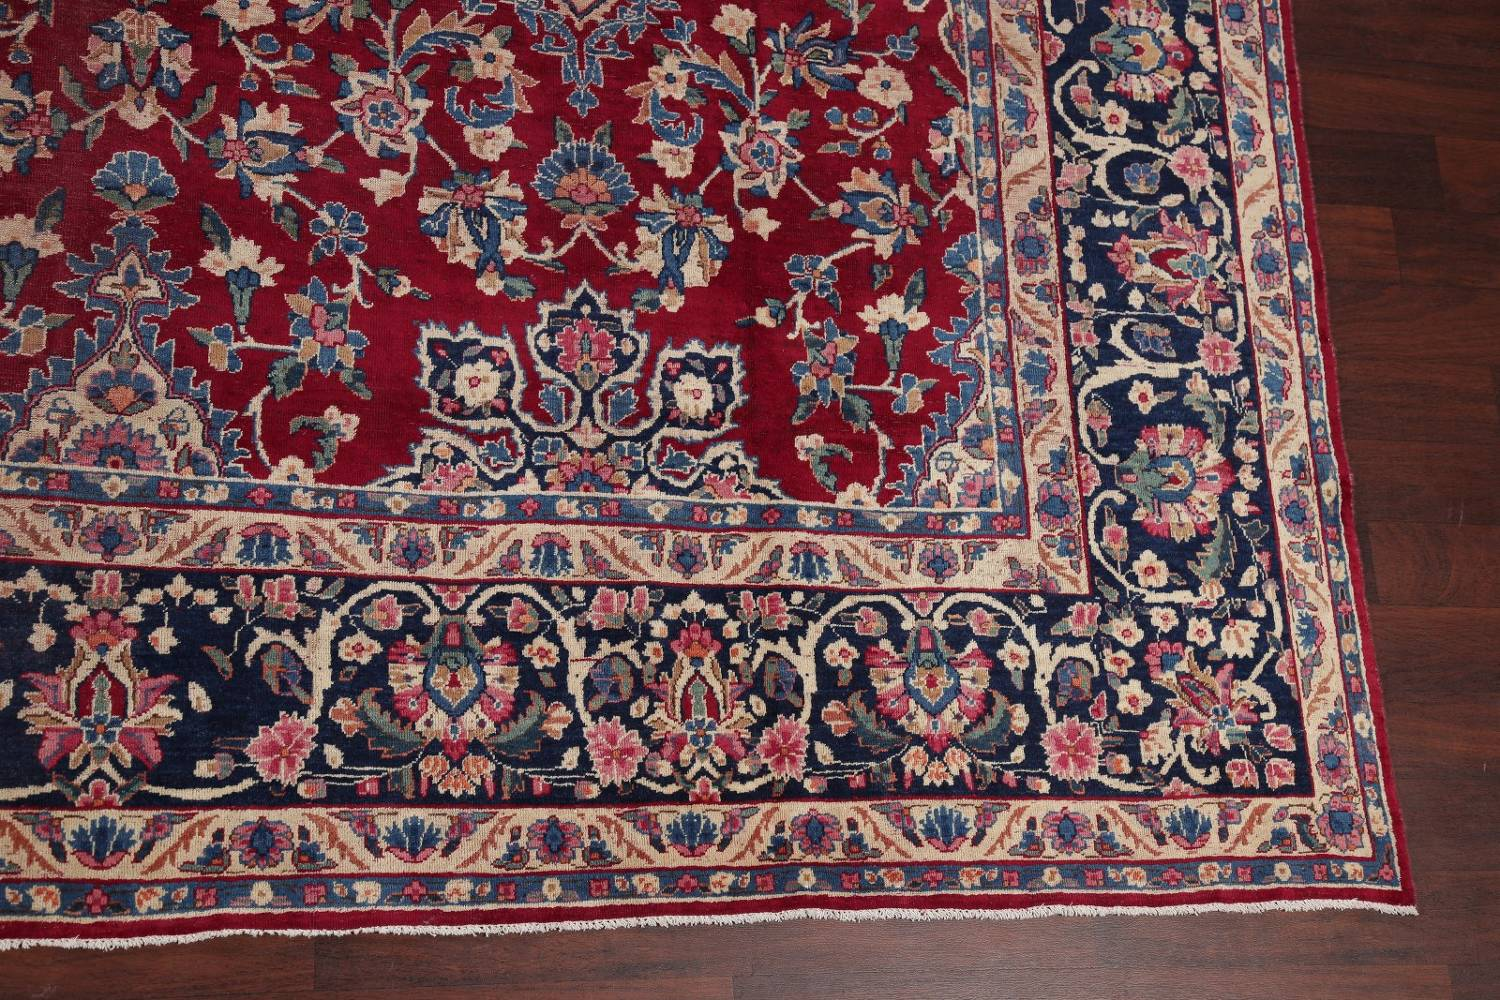 All-Over Floral 11x16 Yazd Persian Area Rug image 6